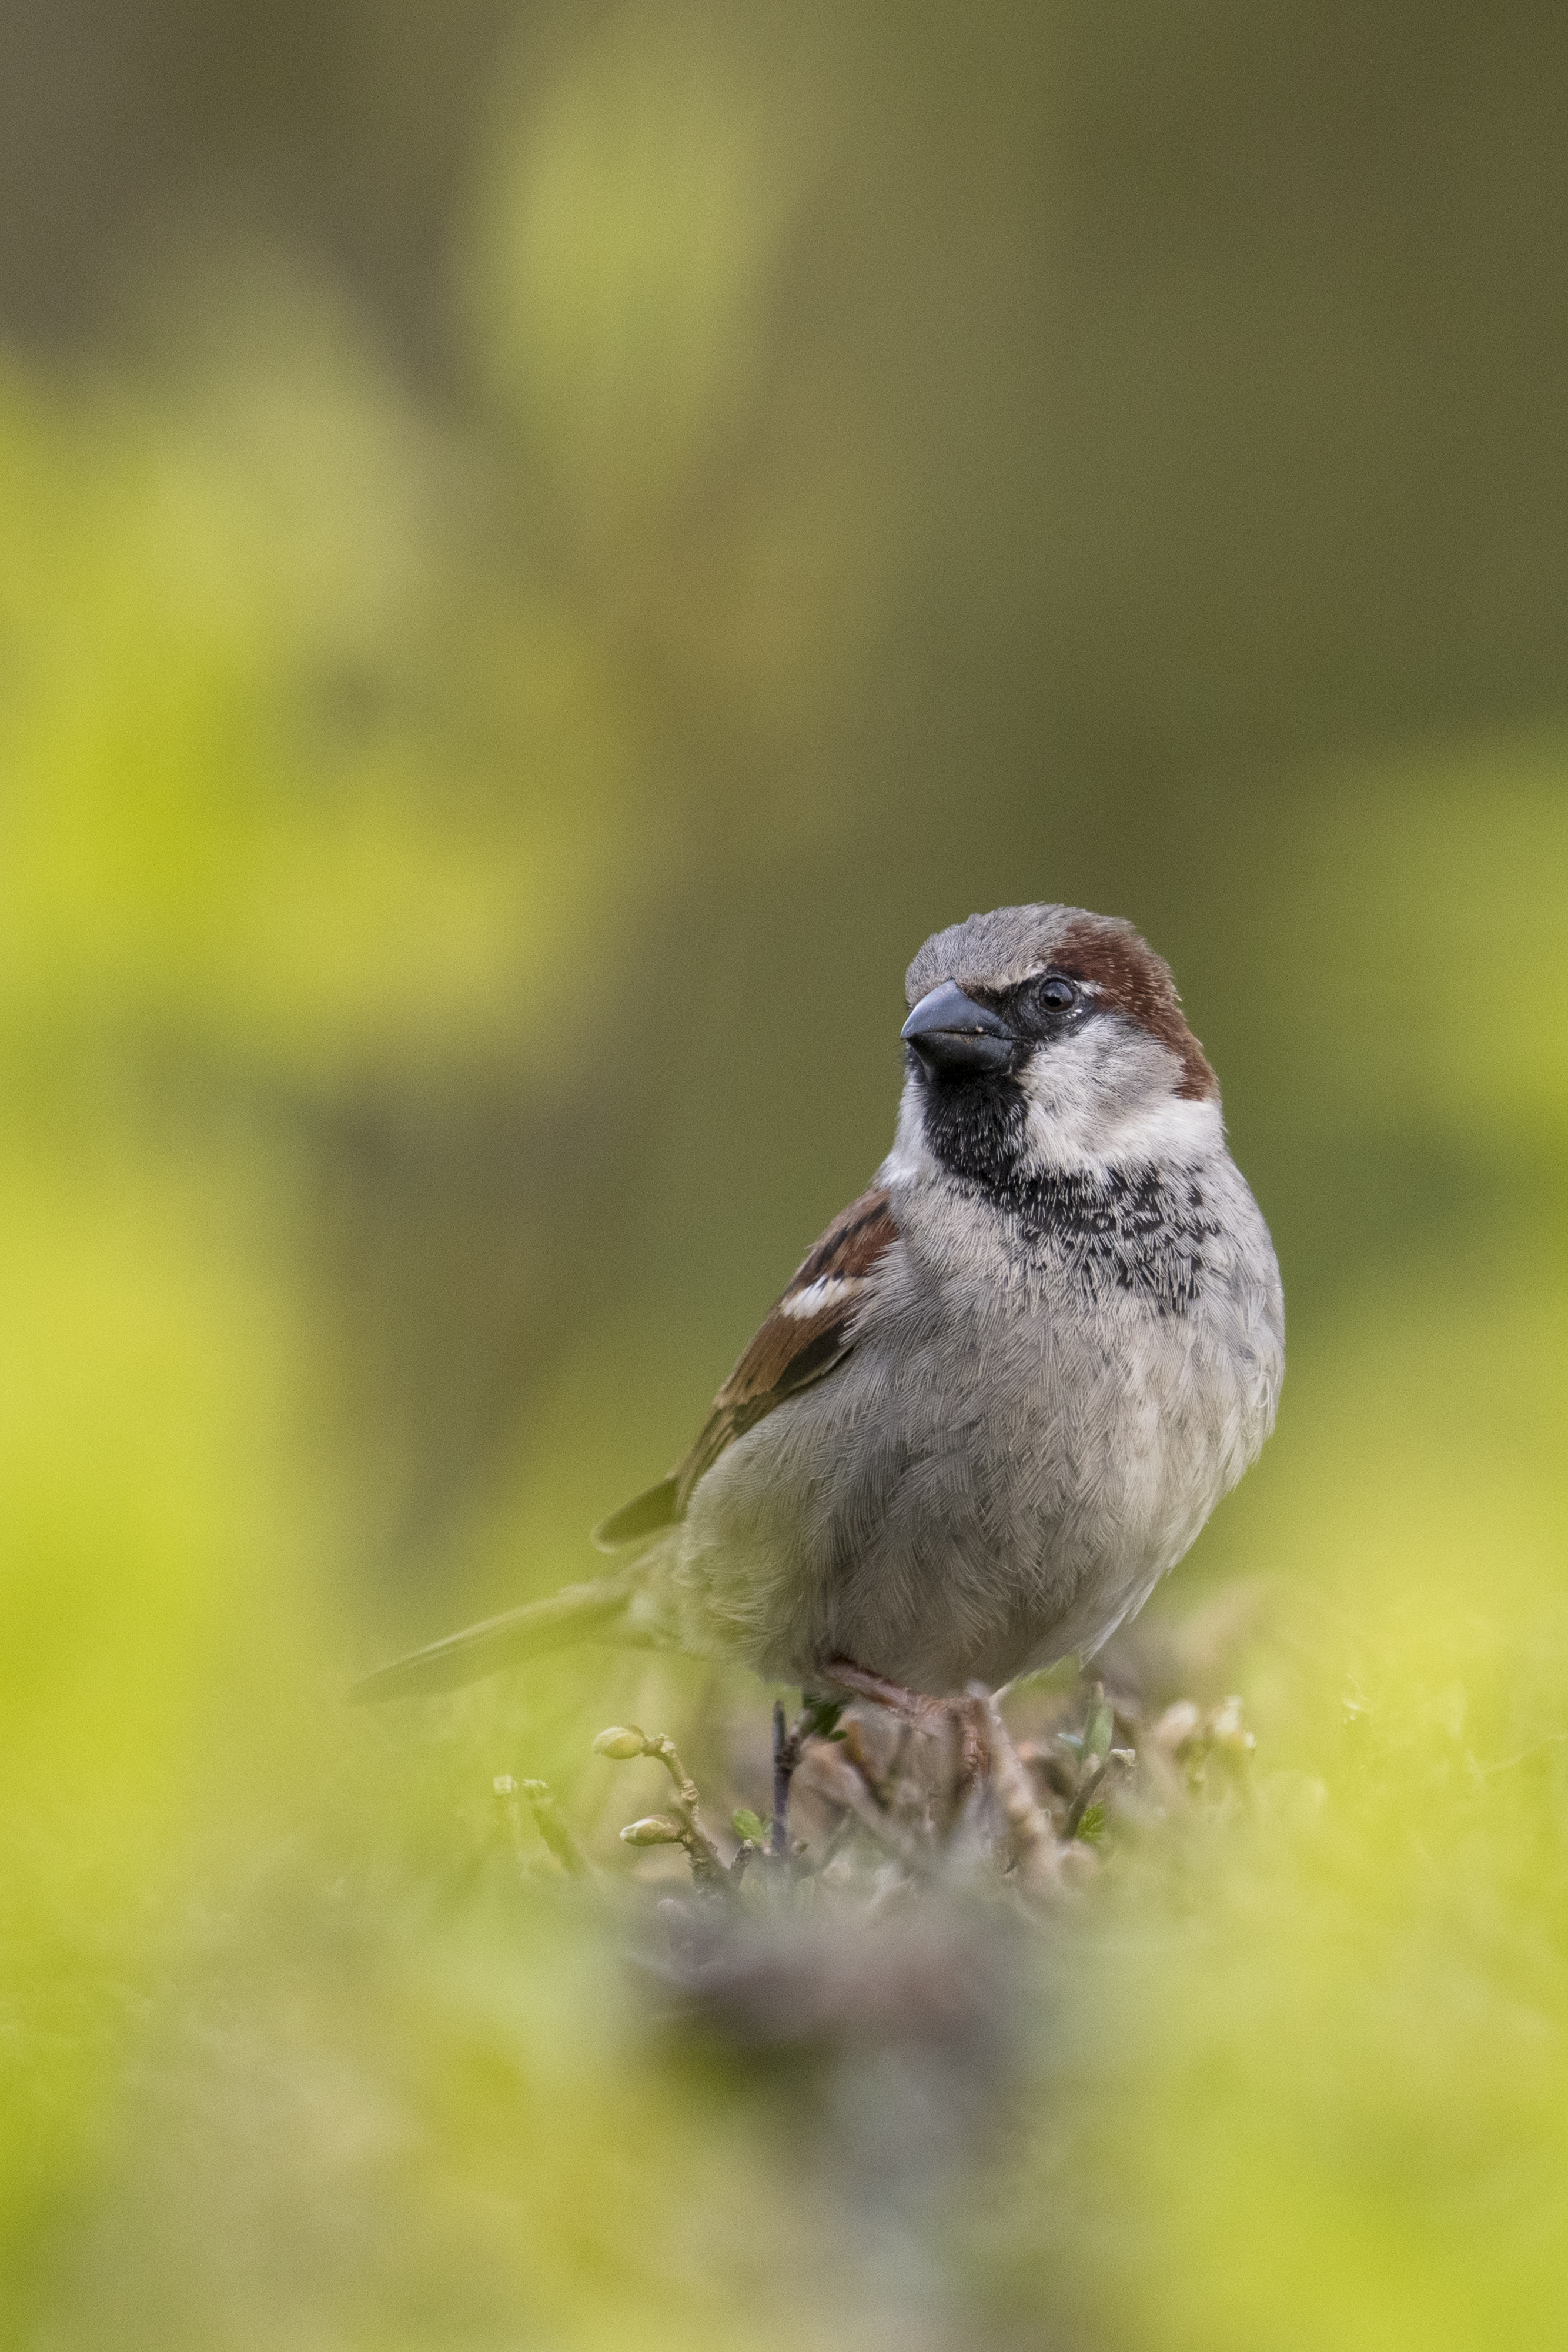 Portrait of a bird with a shallow depth of field